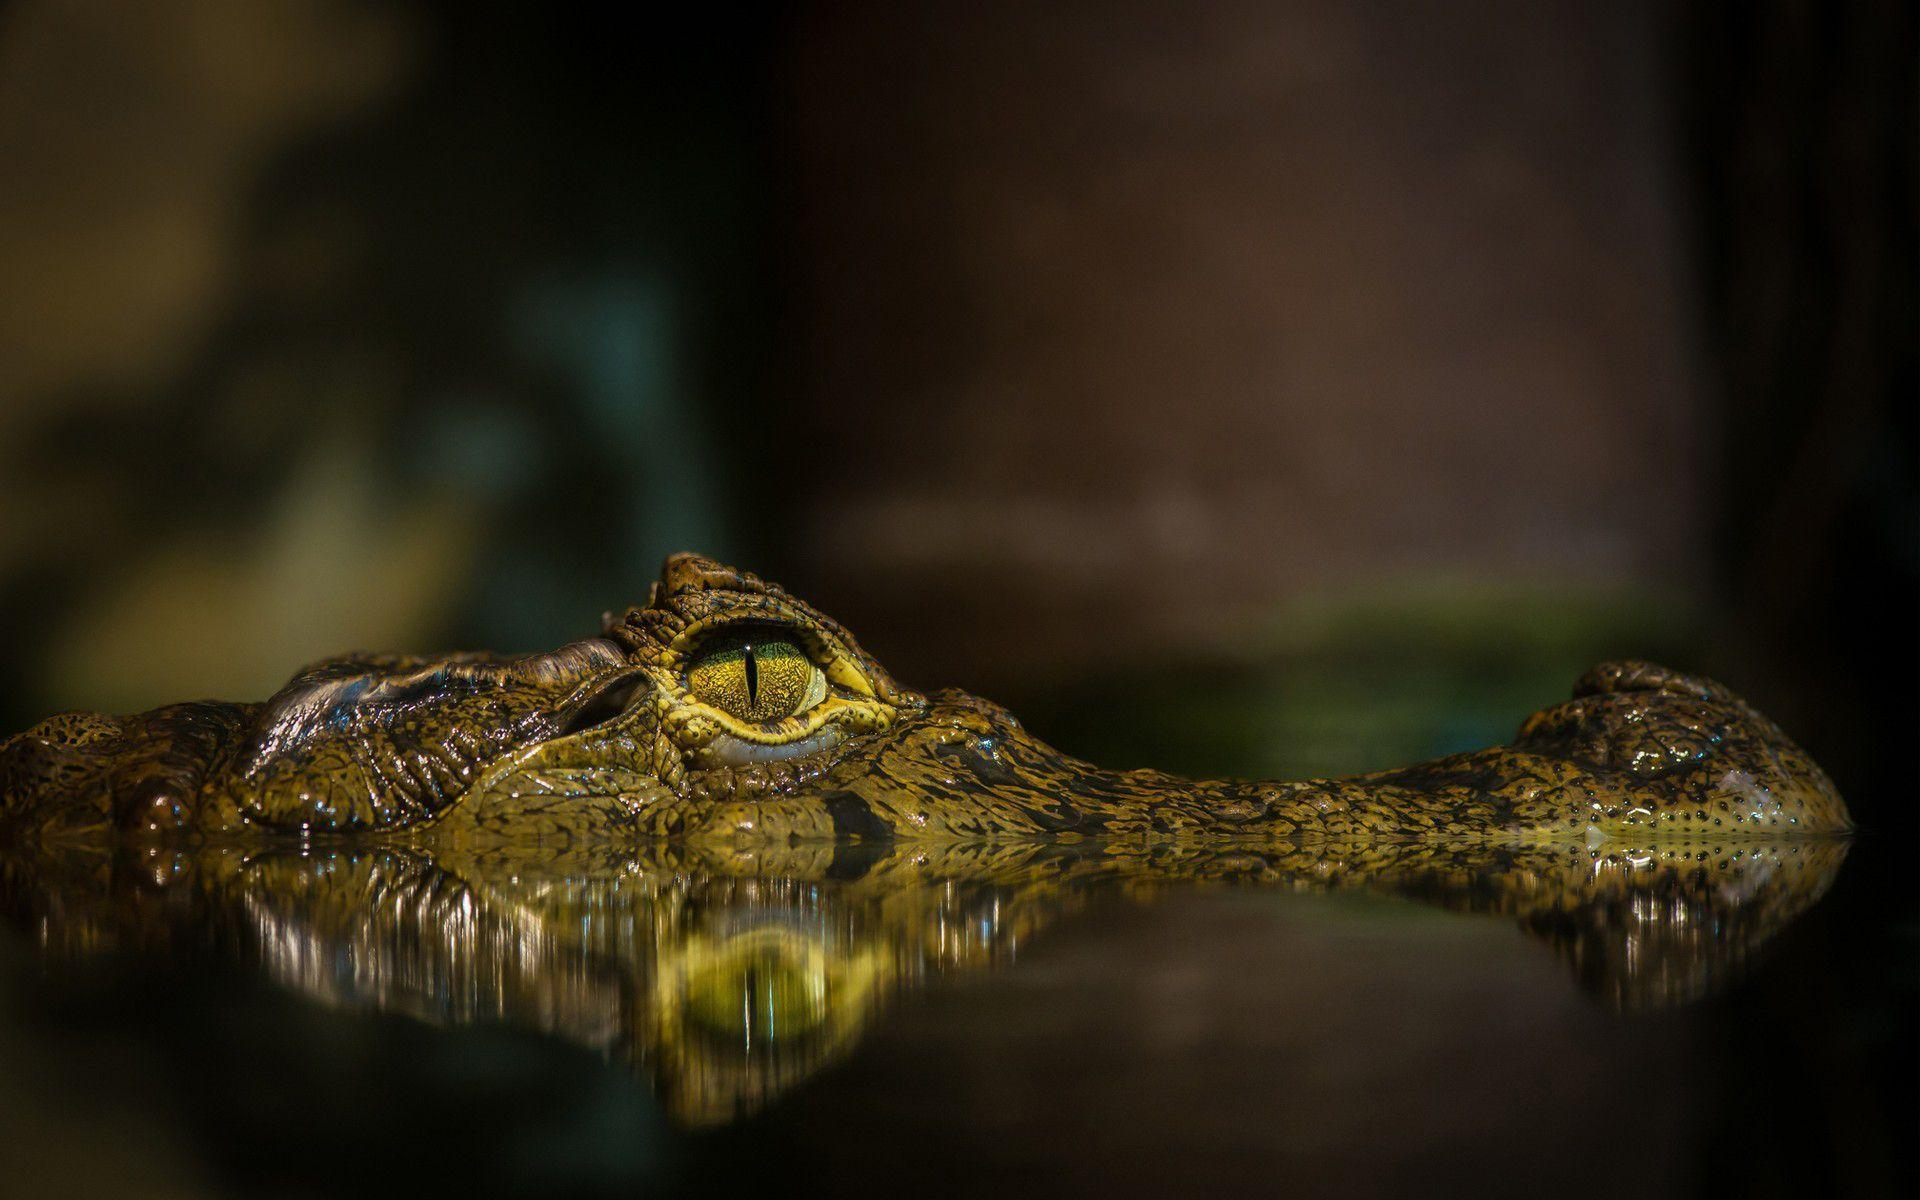 Alligator HD Wallpapers 21675 1920x1200 px